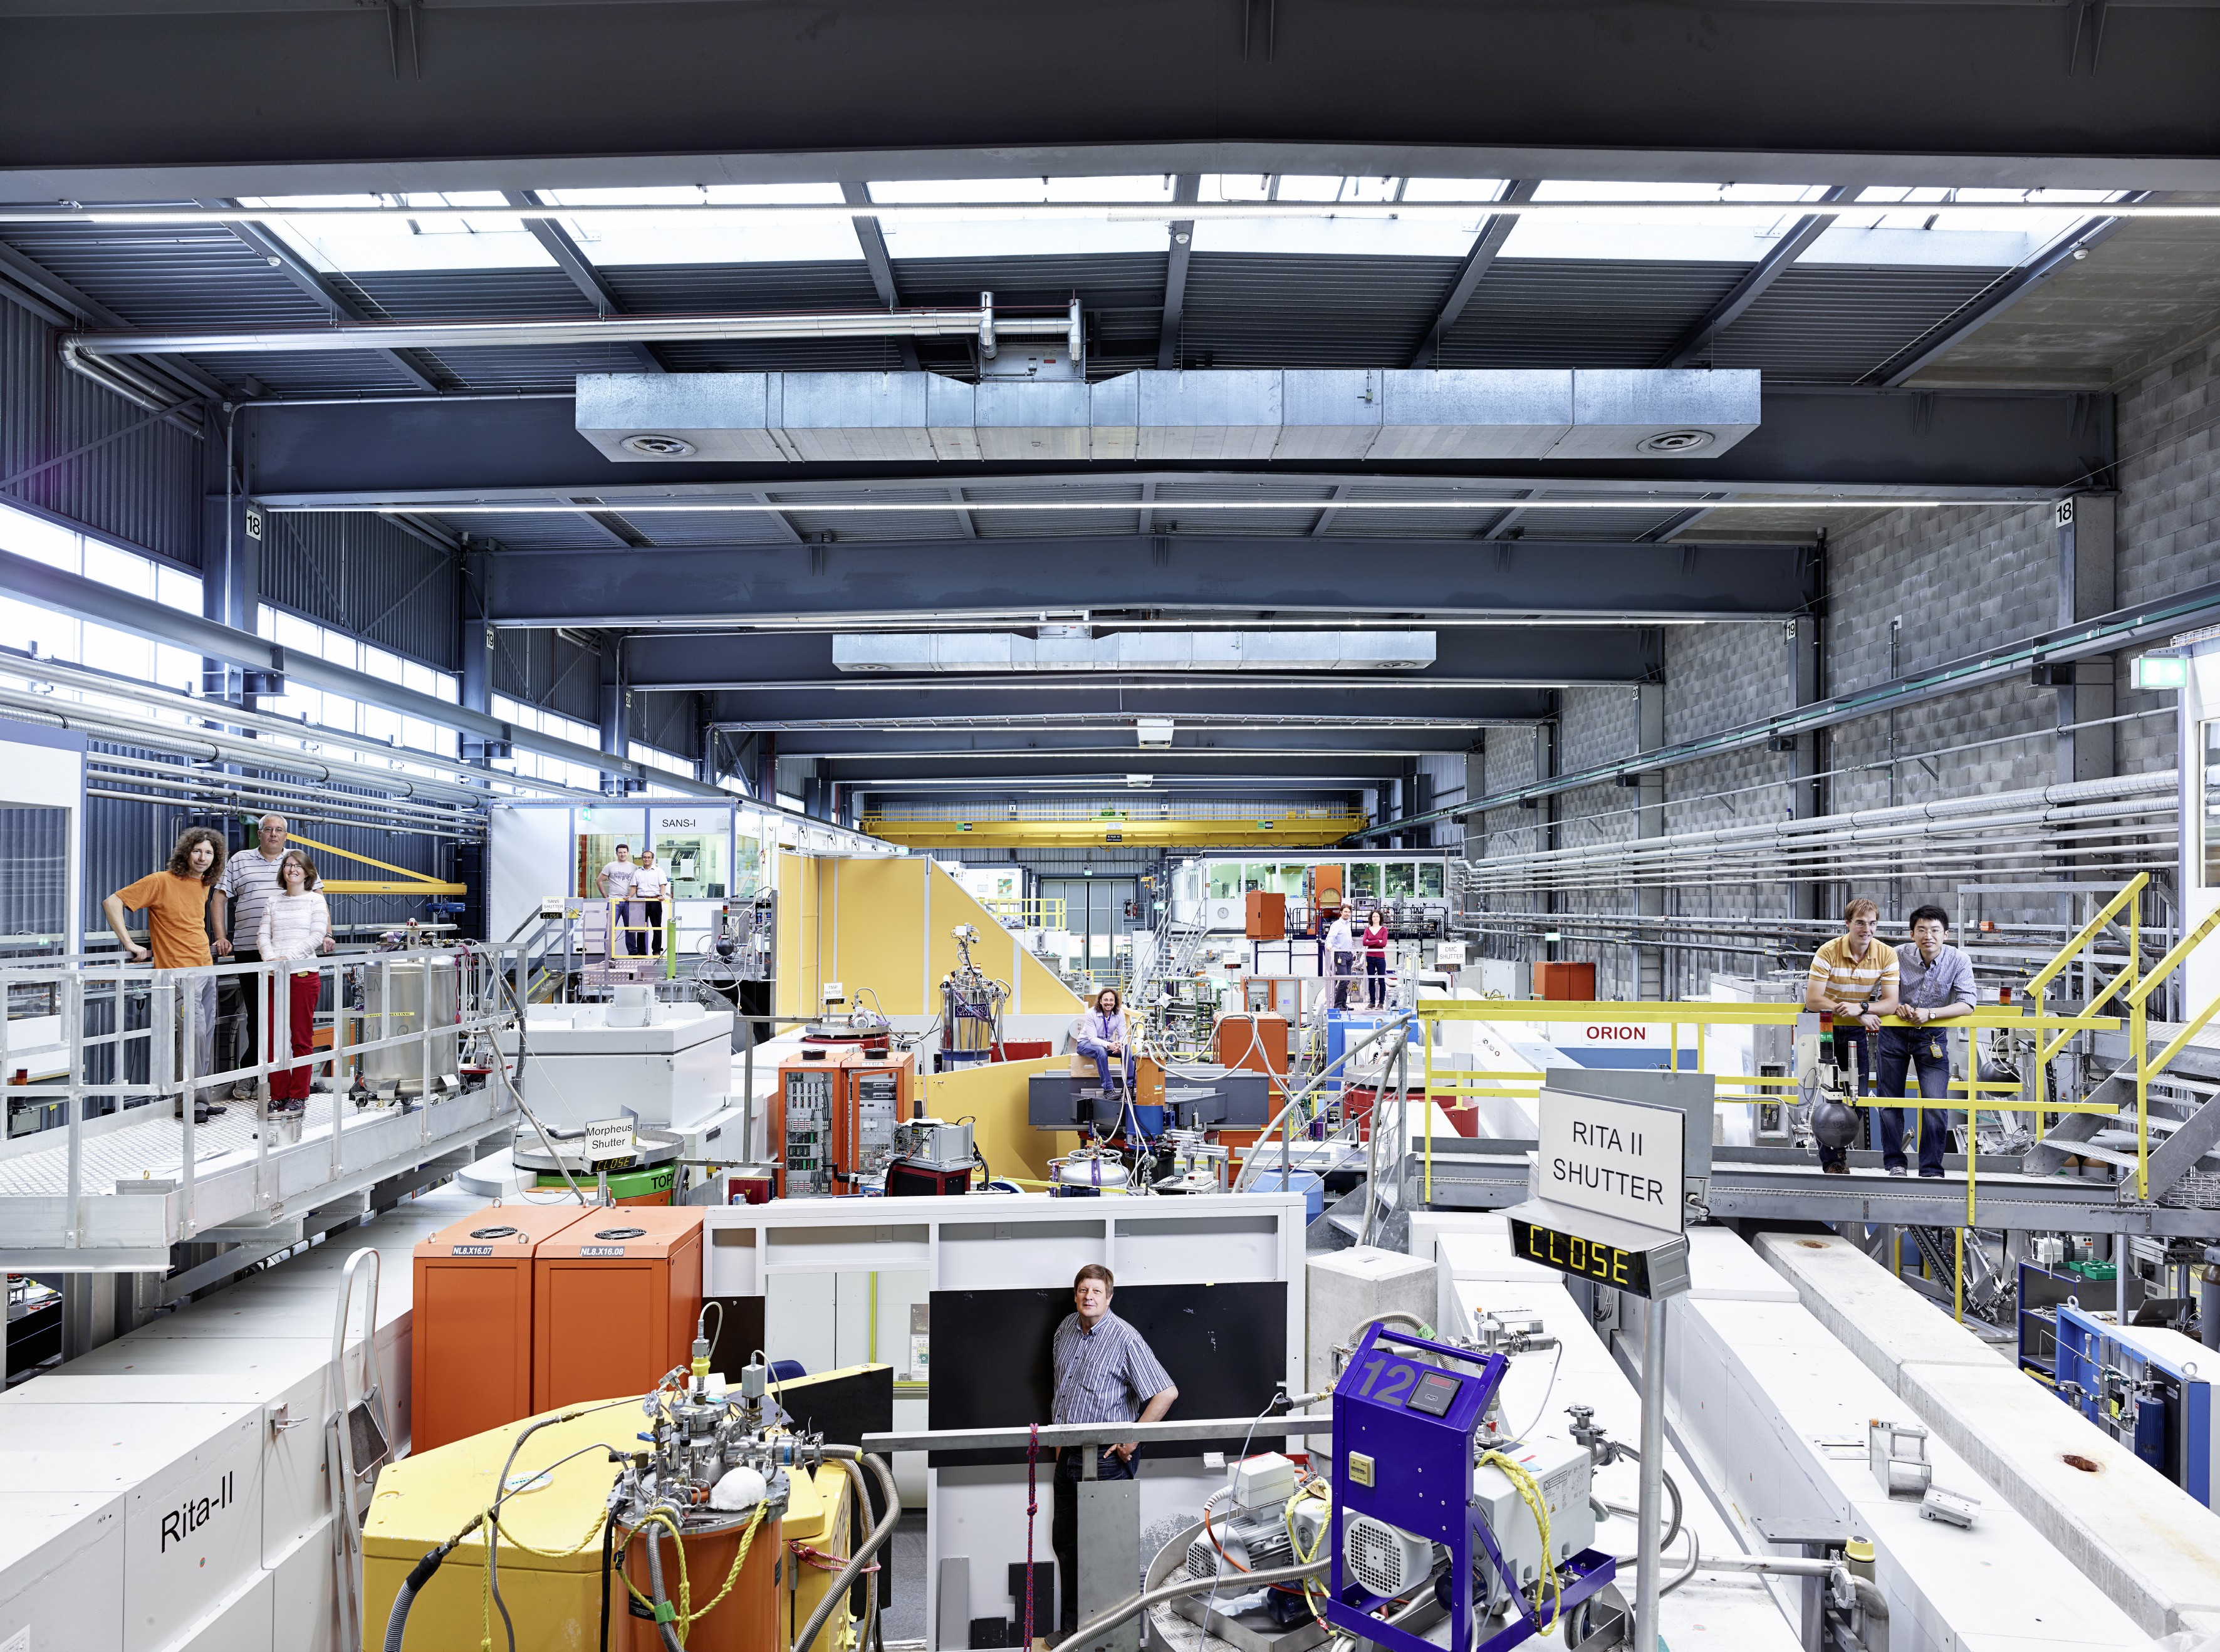 View into a part of the hall where experiments with neutrons are carried out at the Paul Scherrer Institute PSI. The photo is taken from the viewpoint of the neutron source. You can see some of the individual experimental setups, which are distributed throughout the hall. Inside the concrete channels are neutron guides, which lead neutrons to the experiment stations at the end of the hall. (Photo: Scanderbeg Sauer Photography)